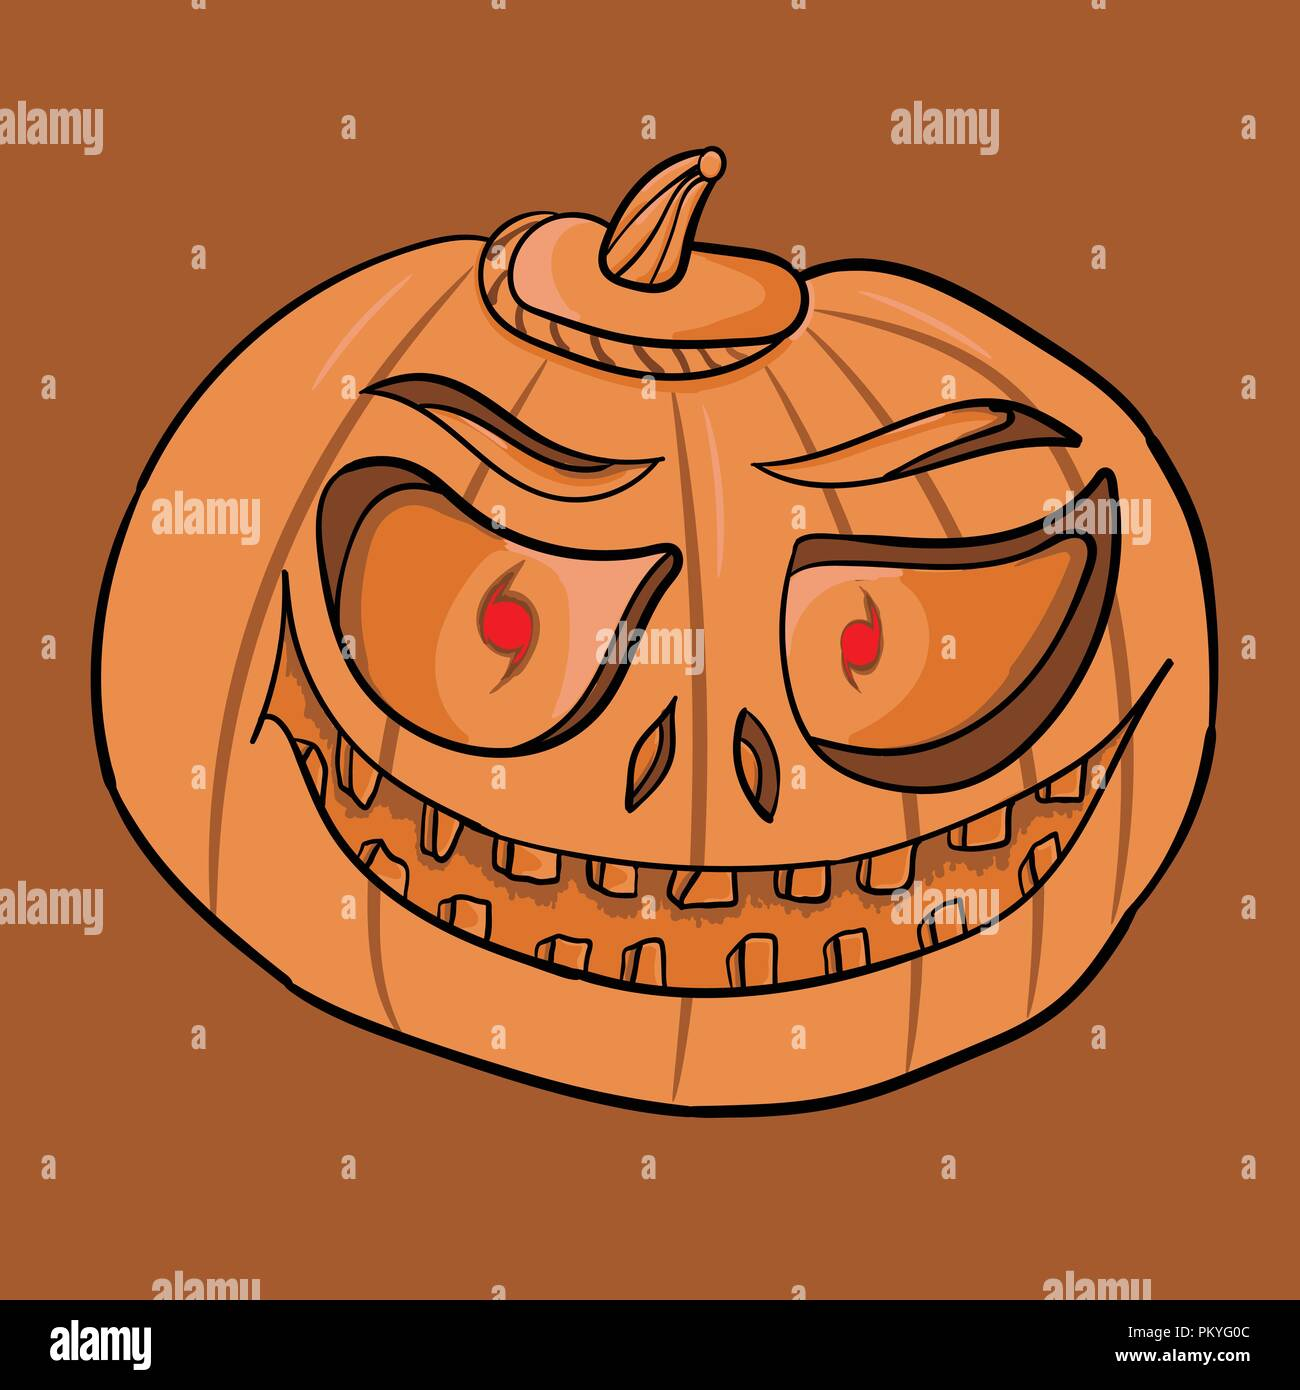 Pumpkin For Halloween Jack O Lantern Hand Drawing Element For Design On Holiday Stock Vector Image Art Alamy